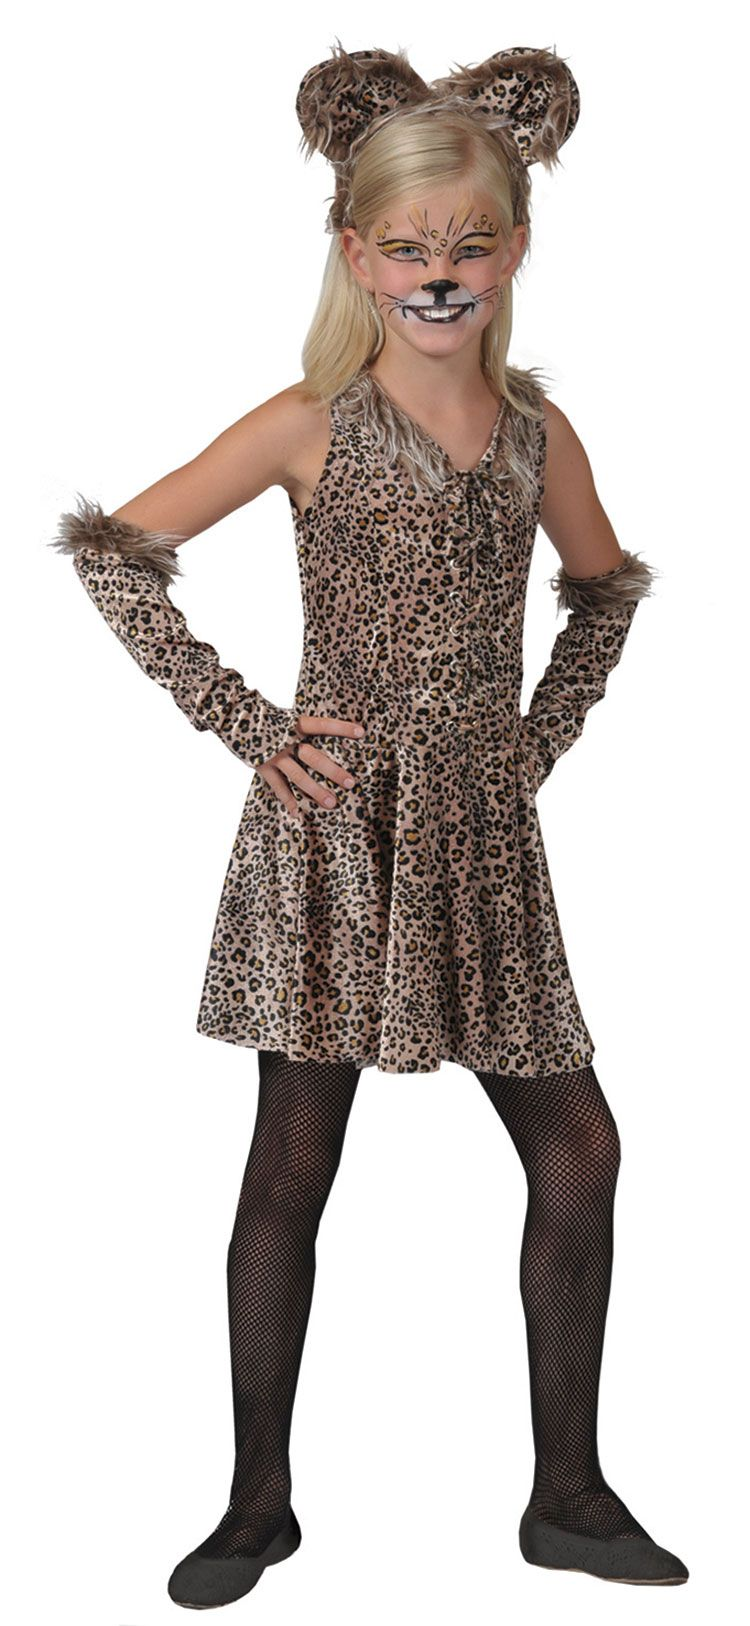 bf5af17c7dc6 Girls Leopard Costume - Kids Costume | Halloween in 2019 | Leopard ...